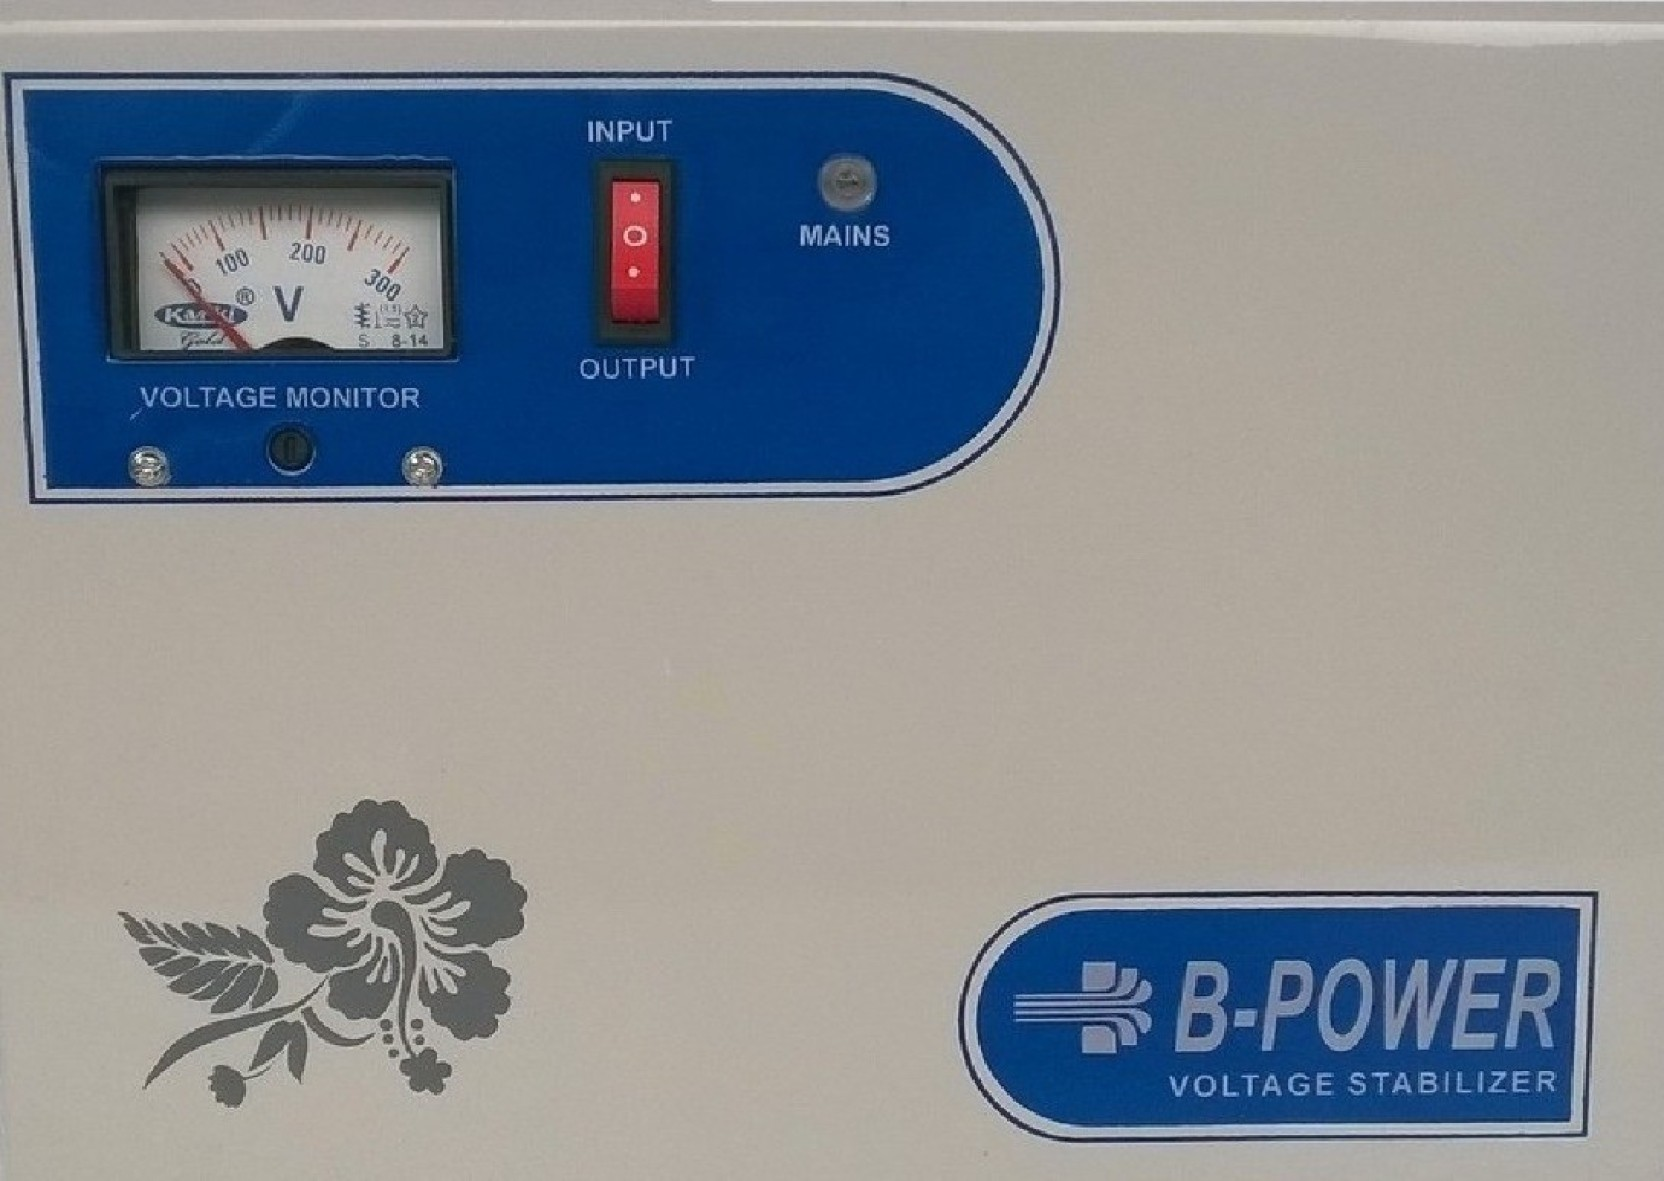 B Power Avs For Ac Upto 15ton 100v 290v Voltage Stabilizer Price In Mains Monitor Compare